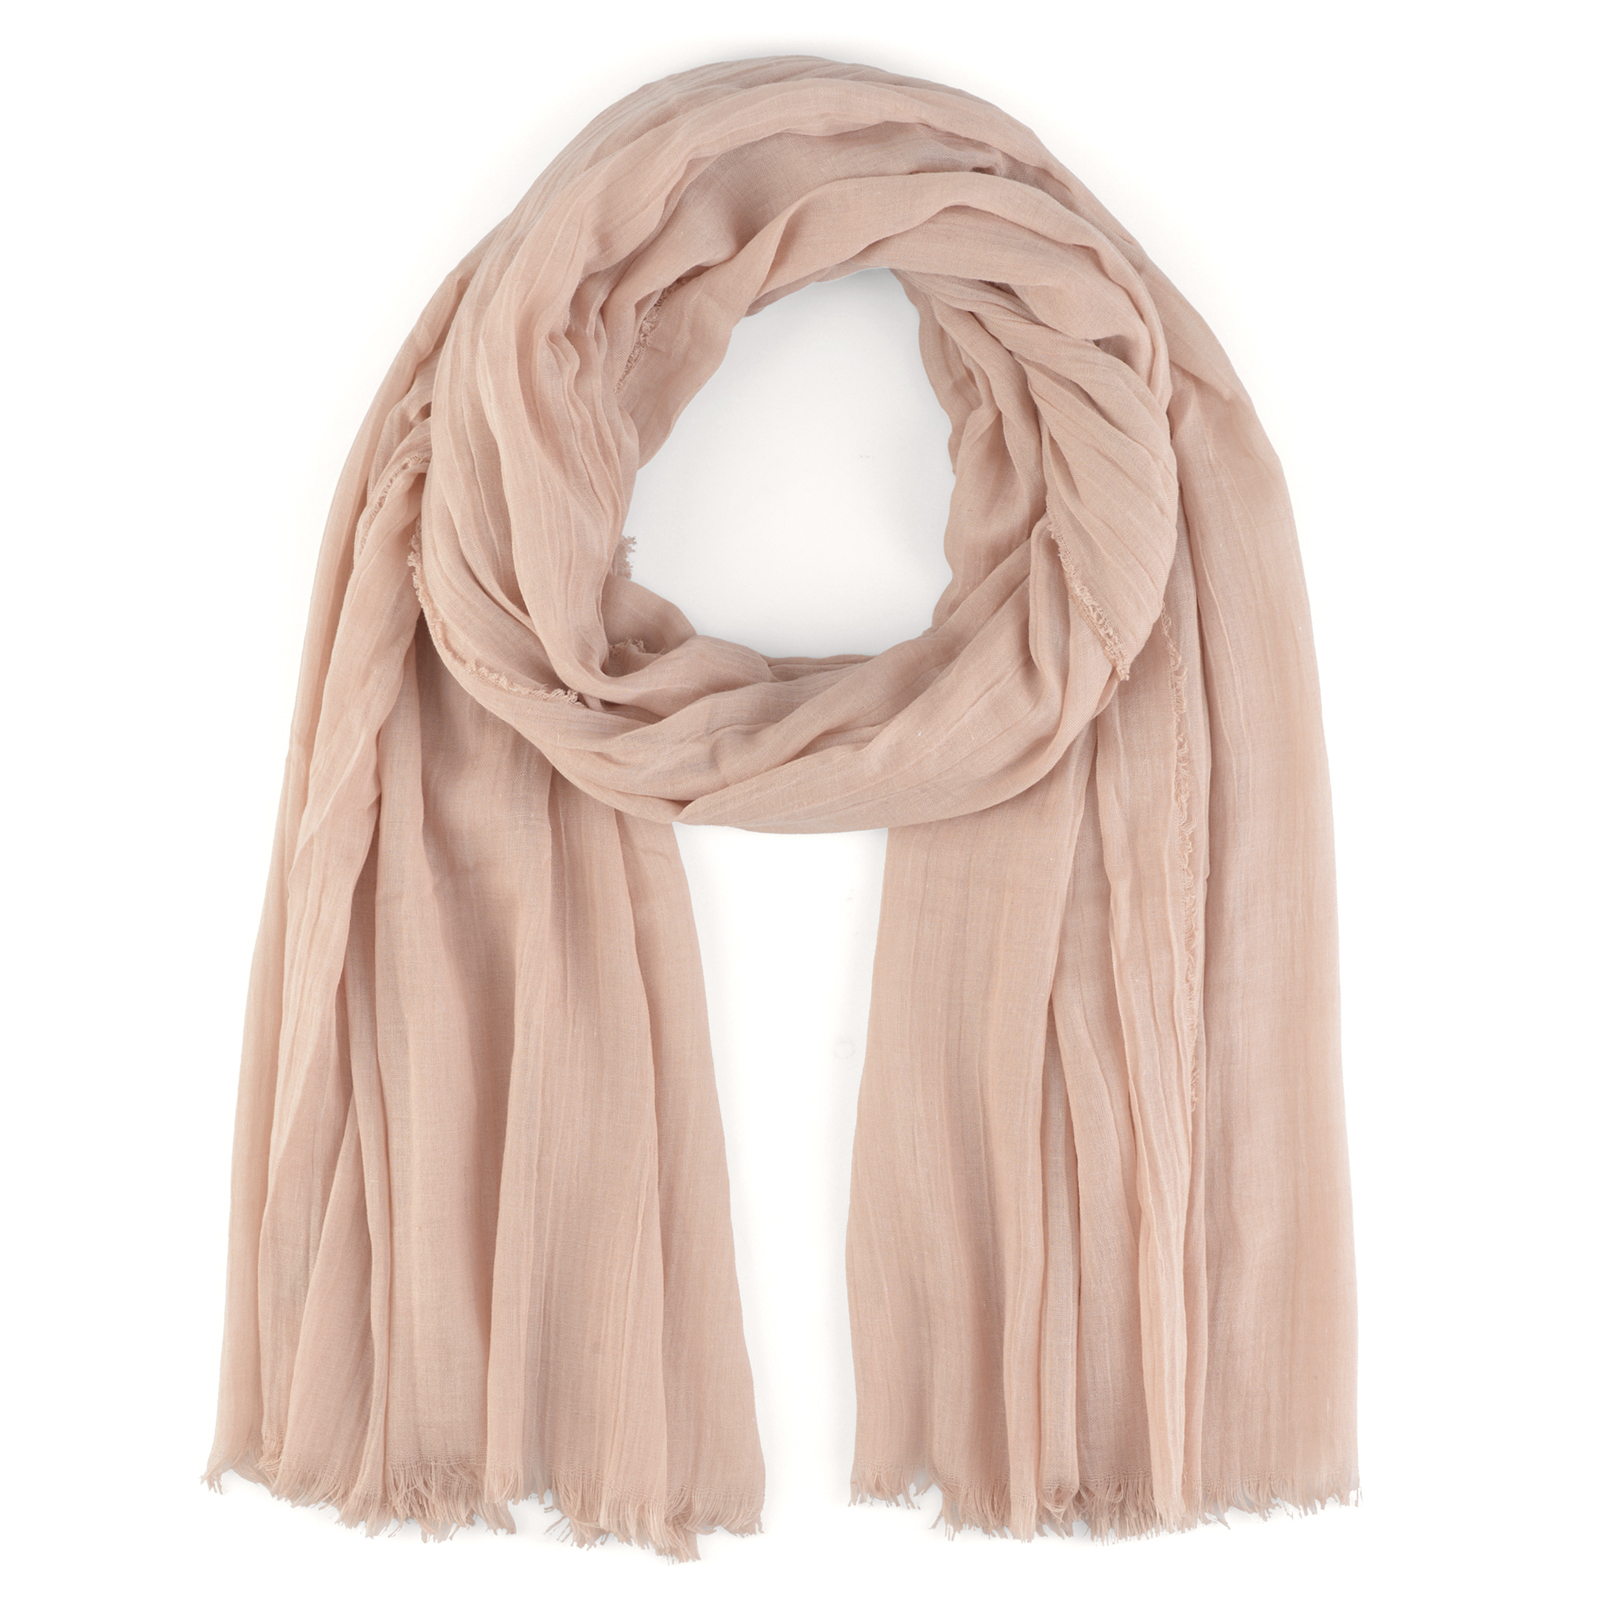 AT-03715-chair-F16-cheche-rose-pale-viscose